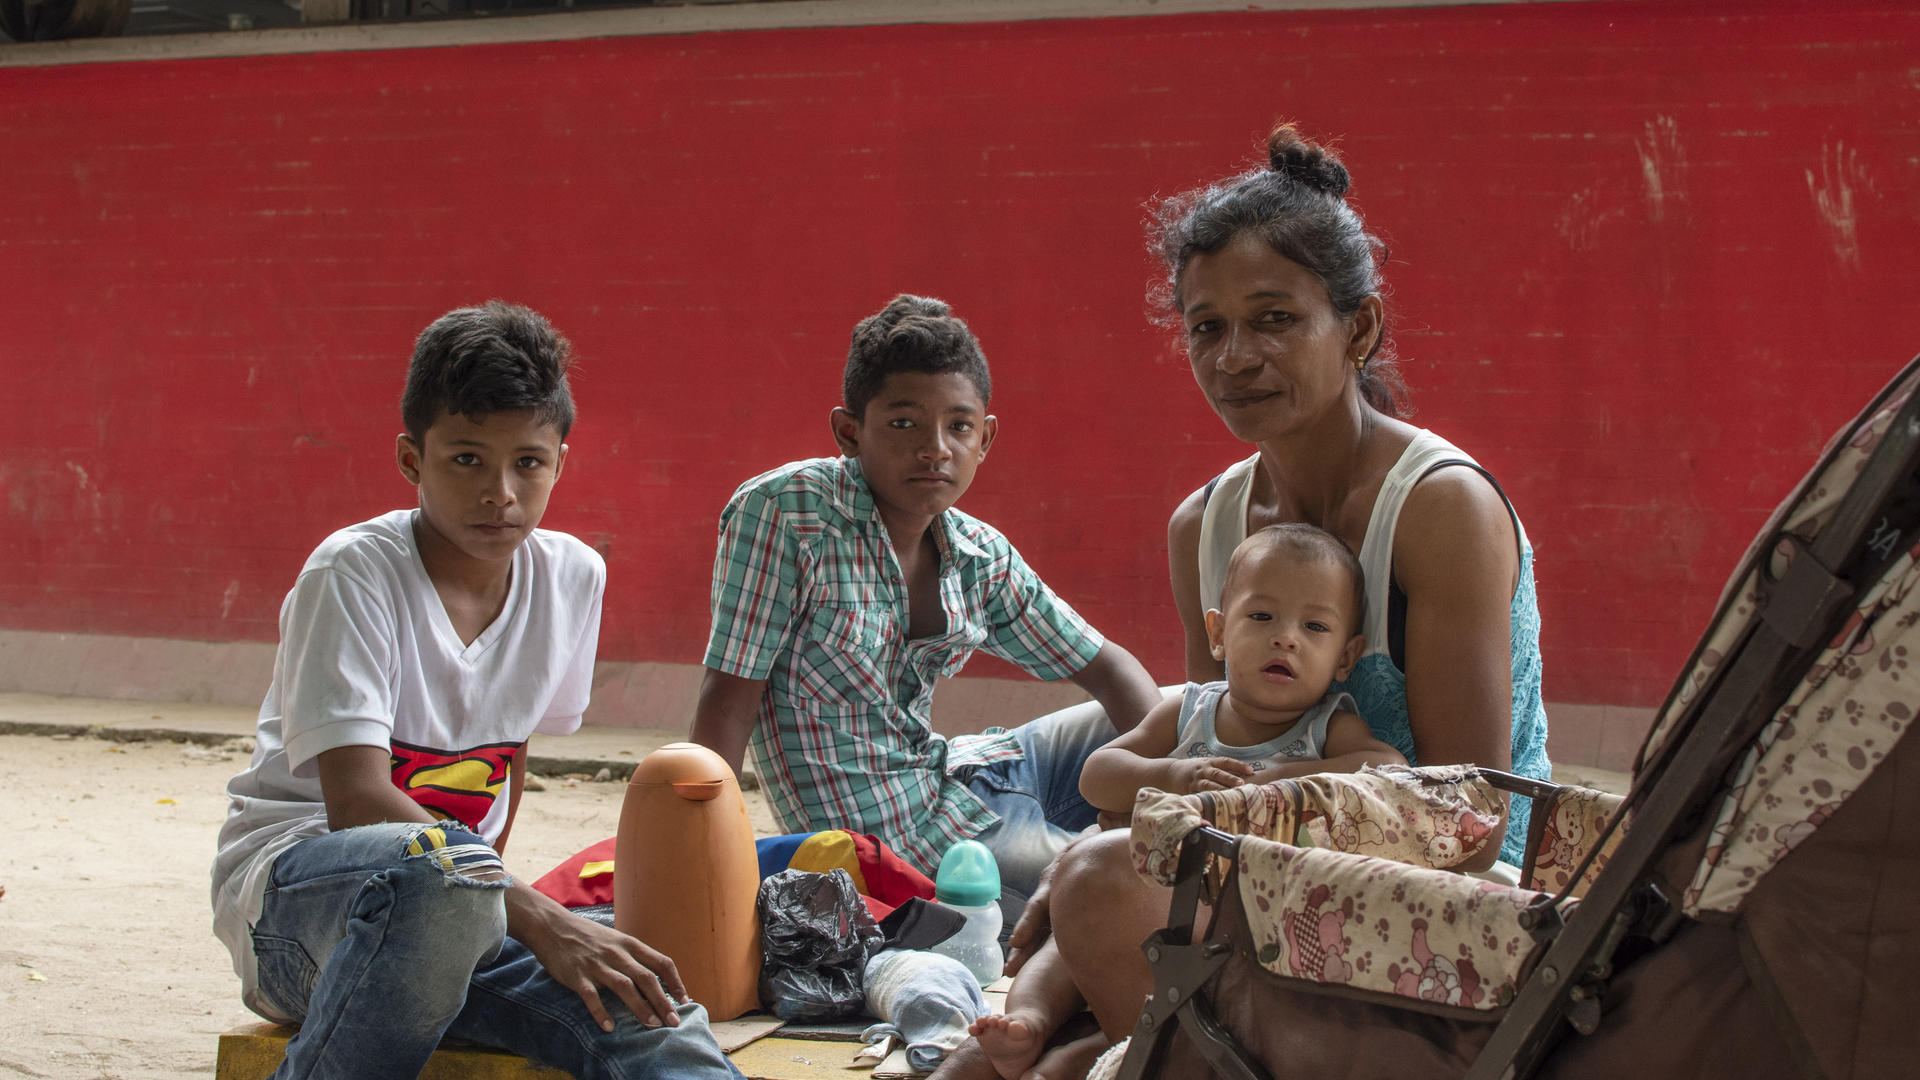 A Venezuelan family living on the street in Bogota, Colombia